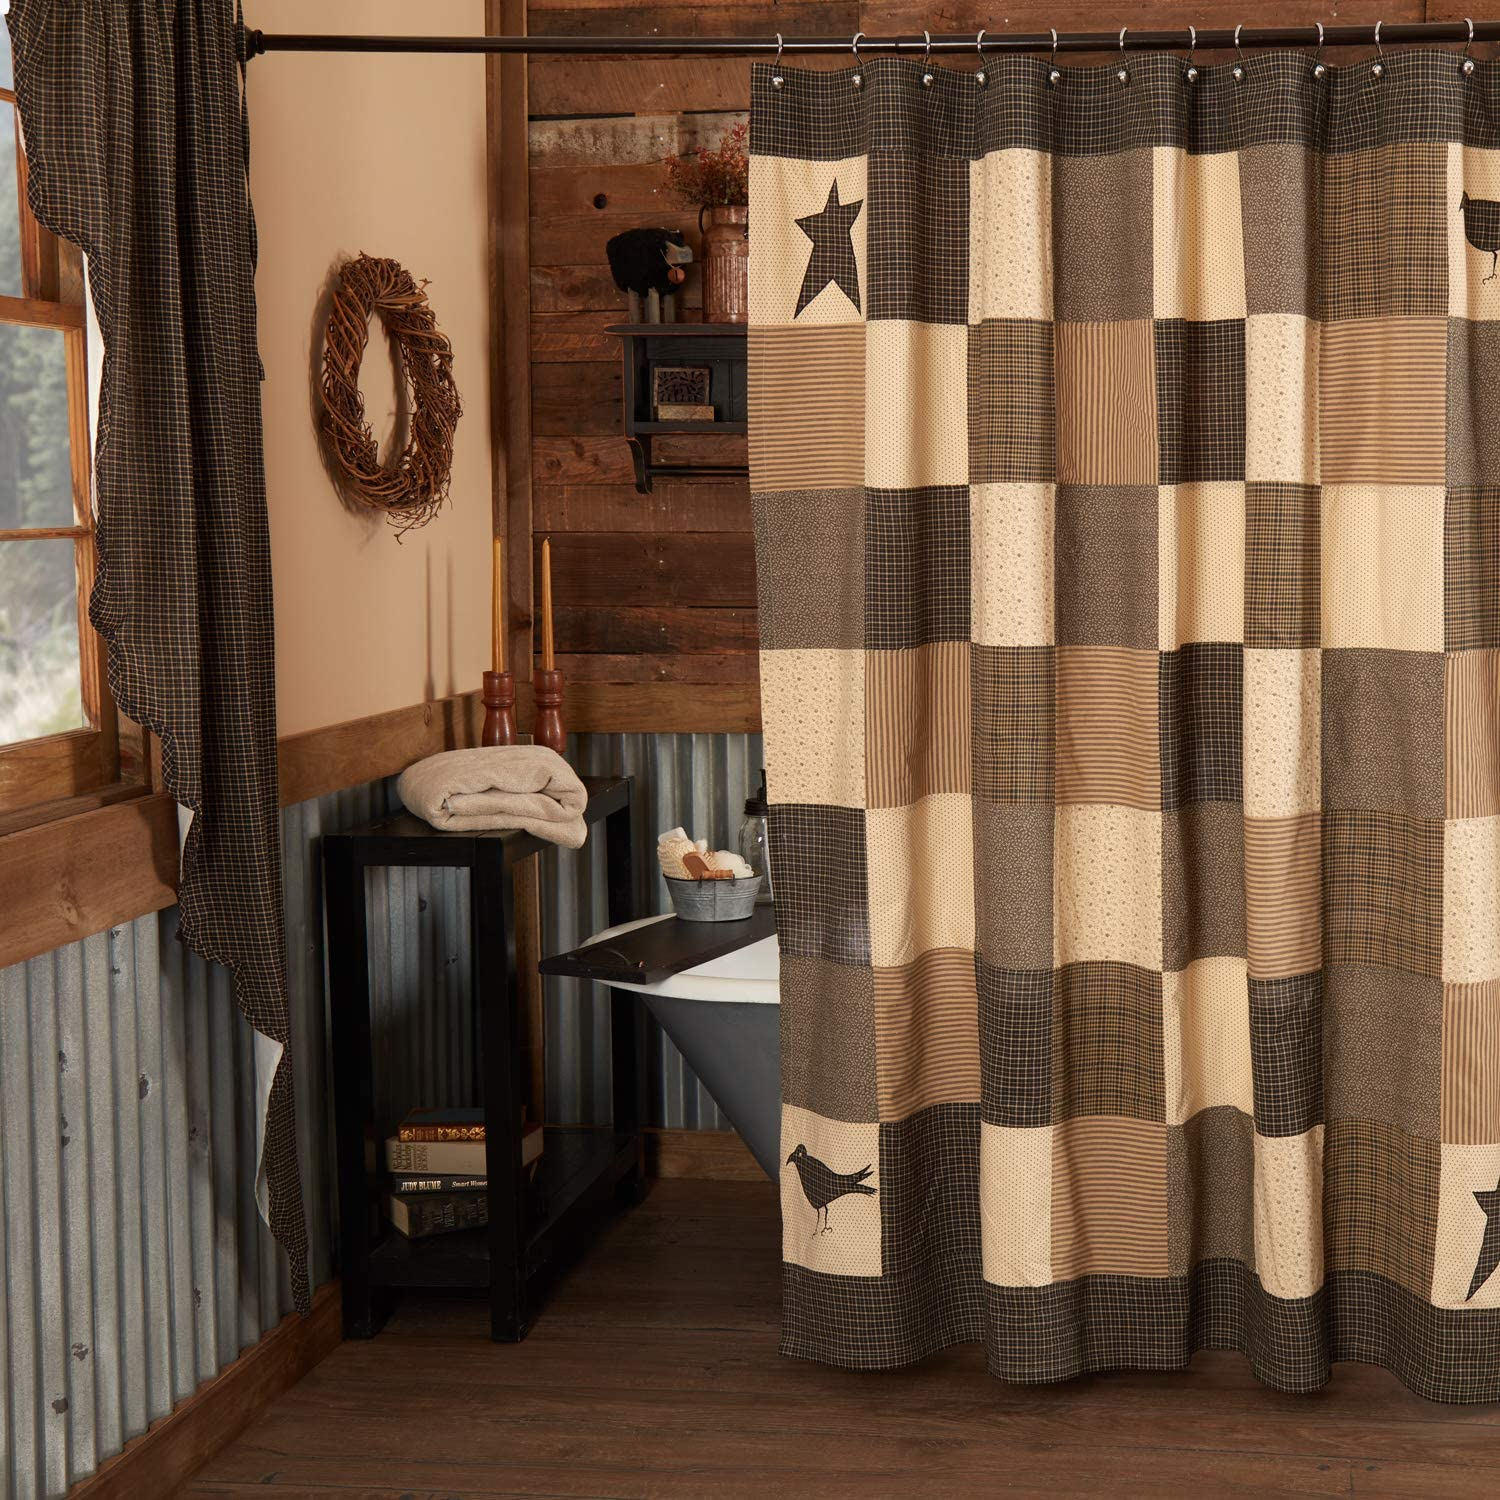 Vhc Brands Kettle Grove Shower Curtain 72x72 Primitive Country Patchwork Design Country Black And Creme Home Kitchen